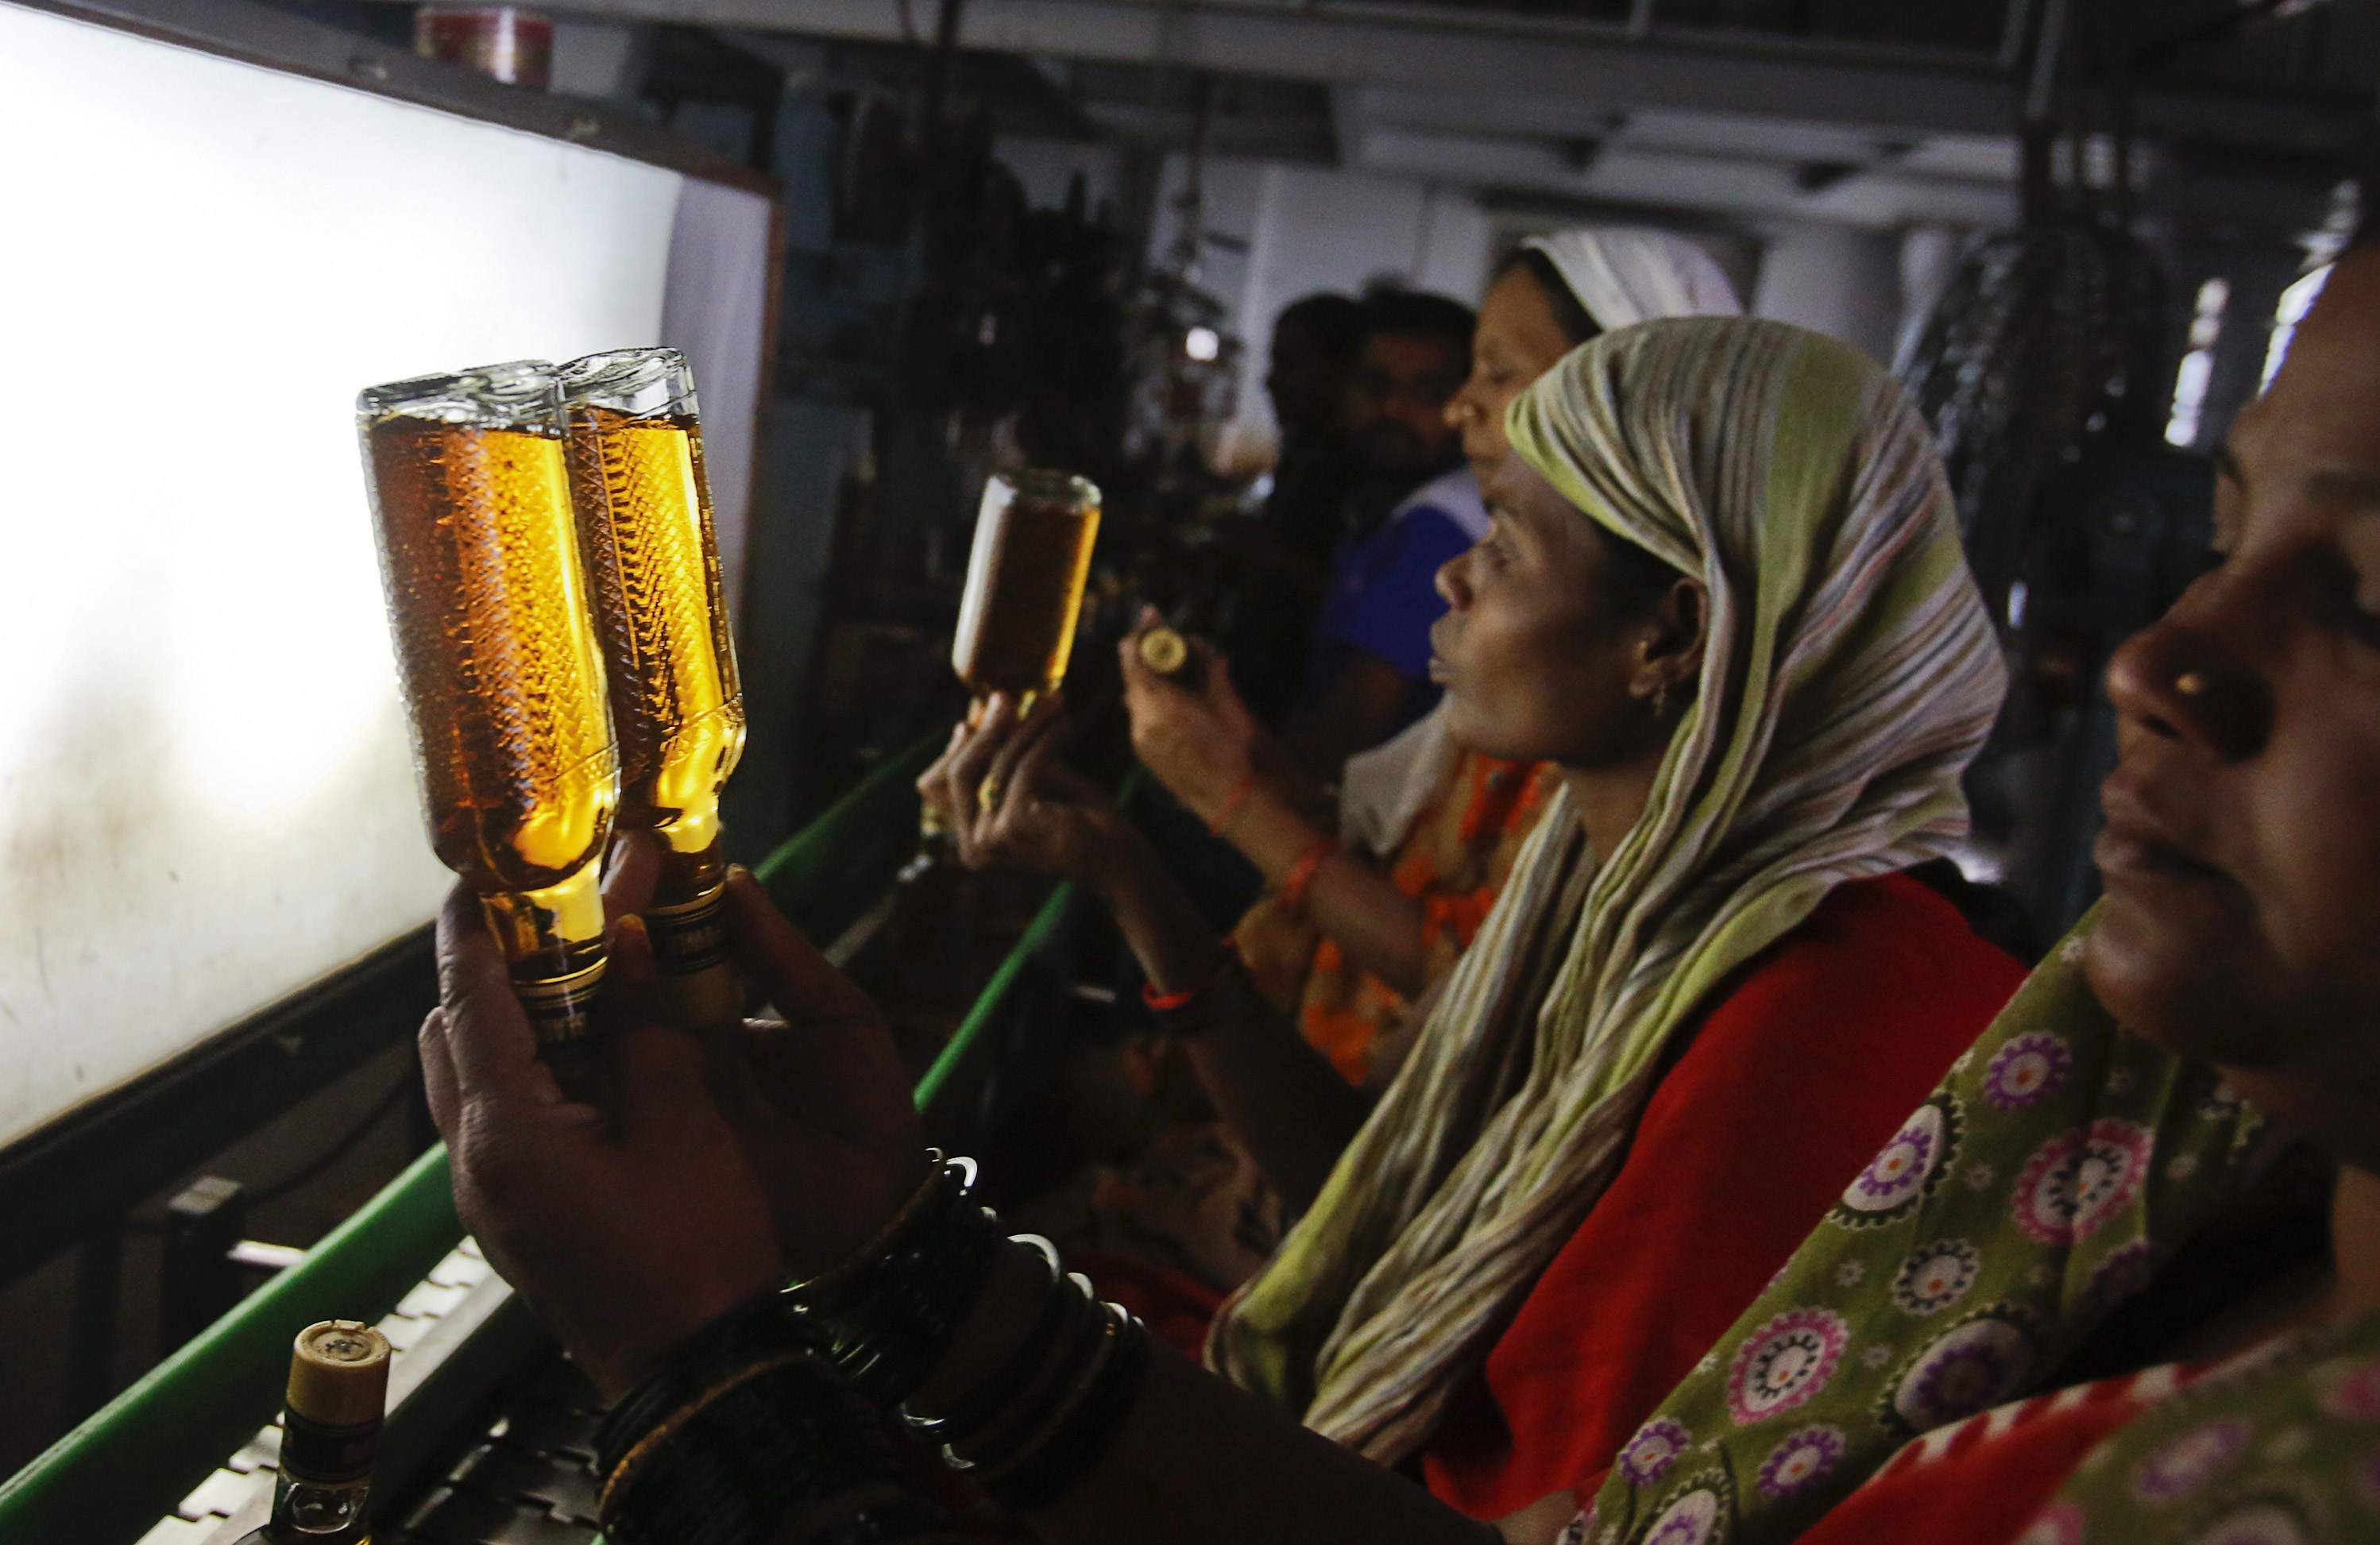 A bottling plant worker checks bottles of Black Power whisky for impurities at a Tilaknagar Industries distillery and bottling unit in Srirampur, about 186 miles northwest of Mumbai, January 28, 2013